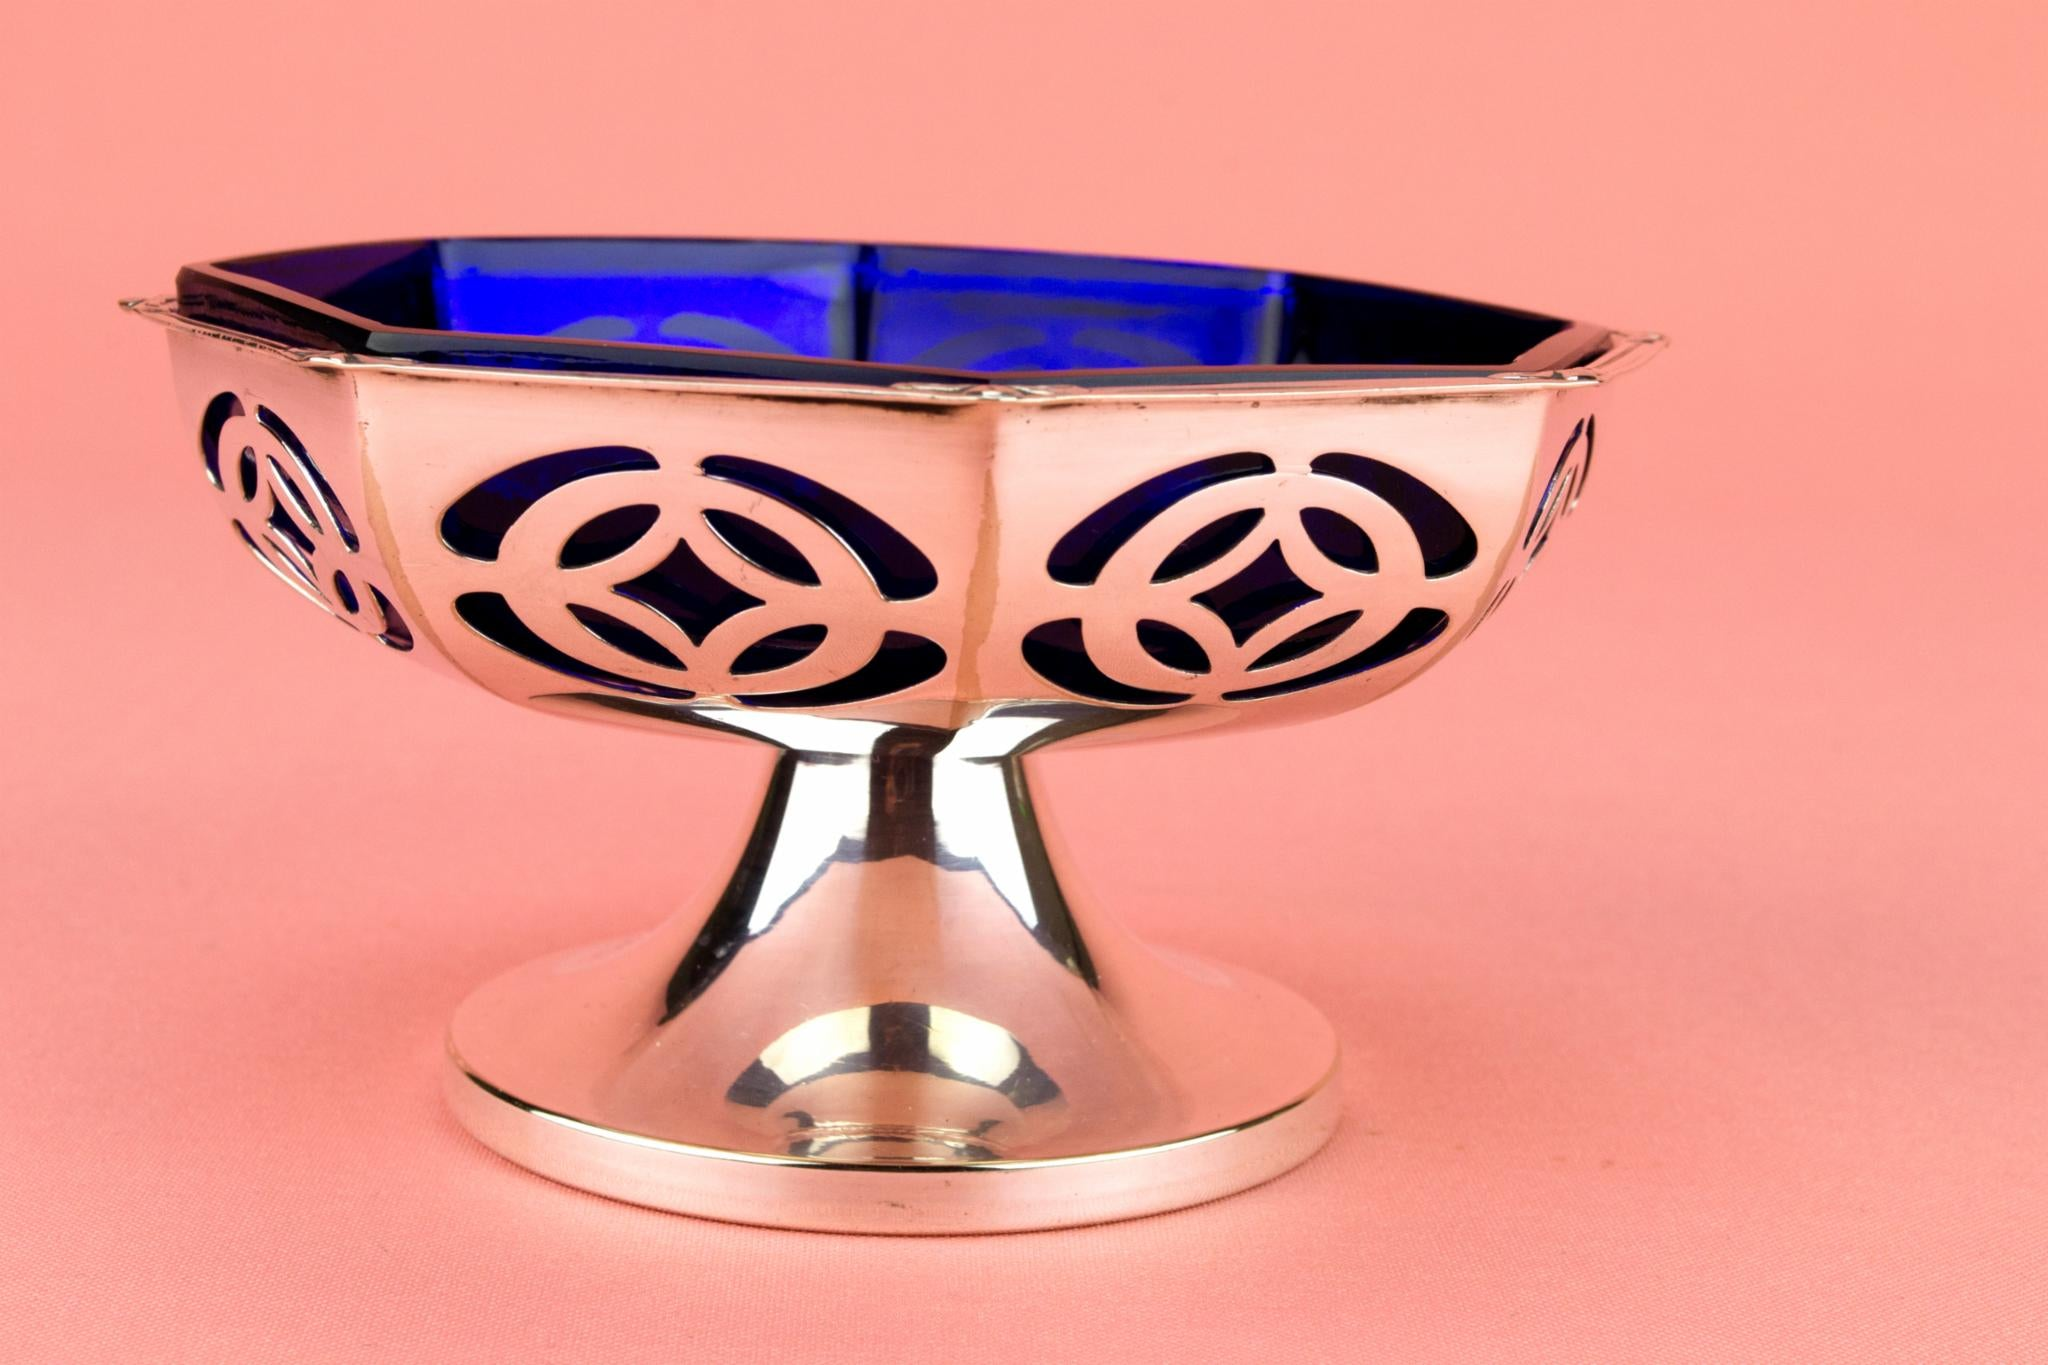 Serving Stem Bowl with Blue Glass Liner, English 1930s